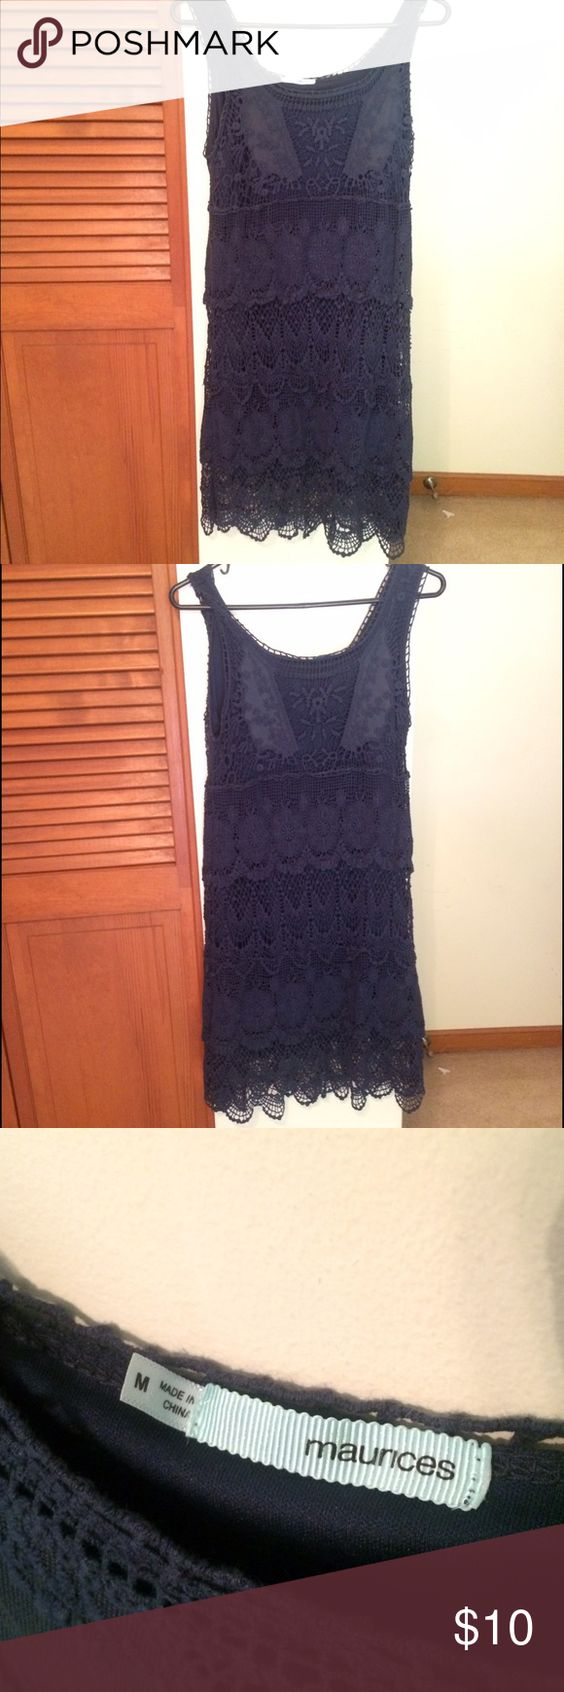 Navy dress gorgeous crocheted dress. Never worn Dresses